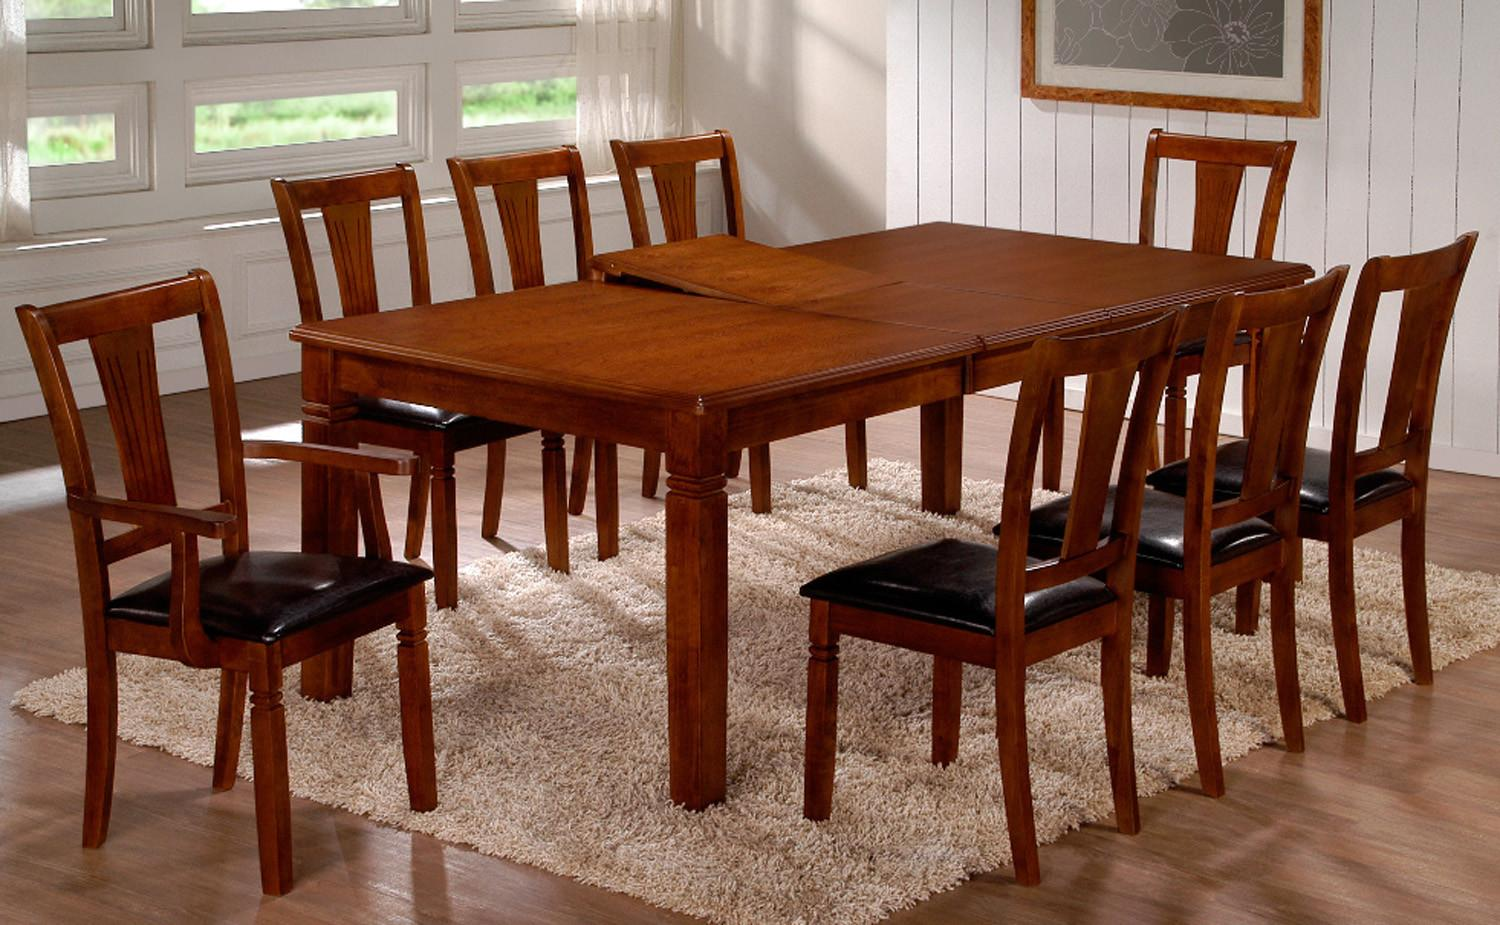 Dining Room Best Tables Small Spaces